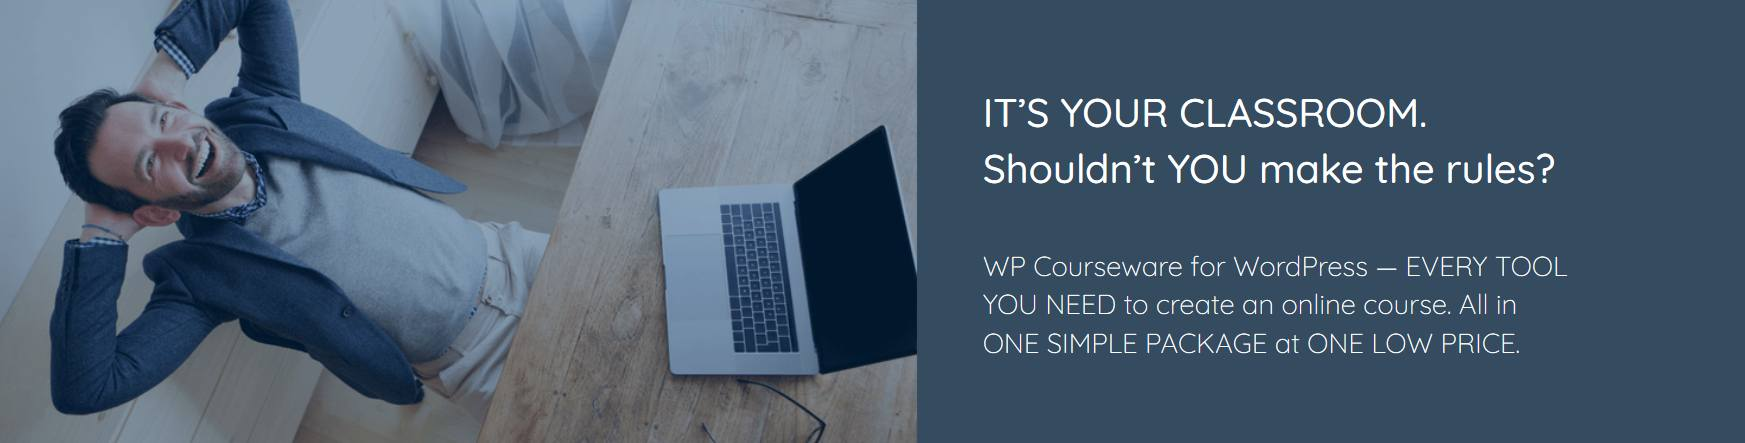 WP Courseware: plugin de cursos online para WordPress